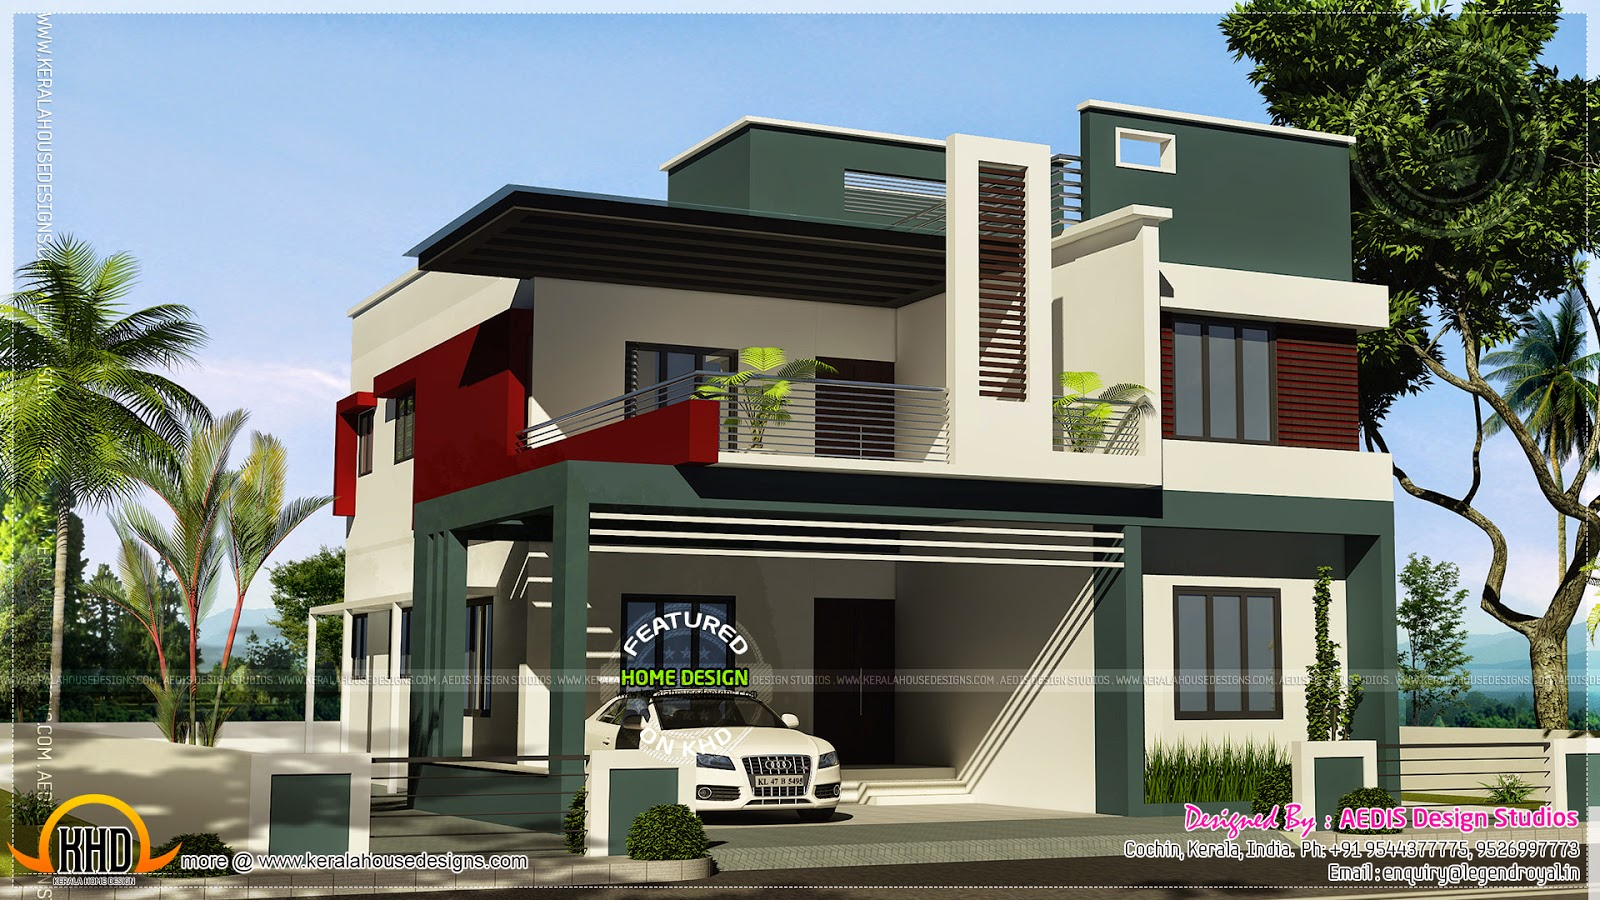 Duplex house contemporary style kerala home design and for Types of duplex houses